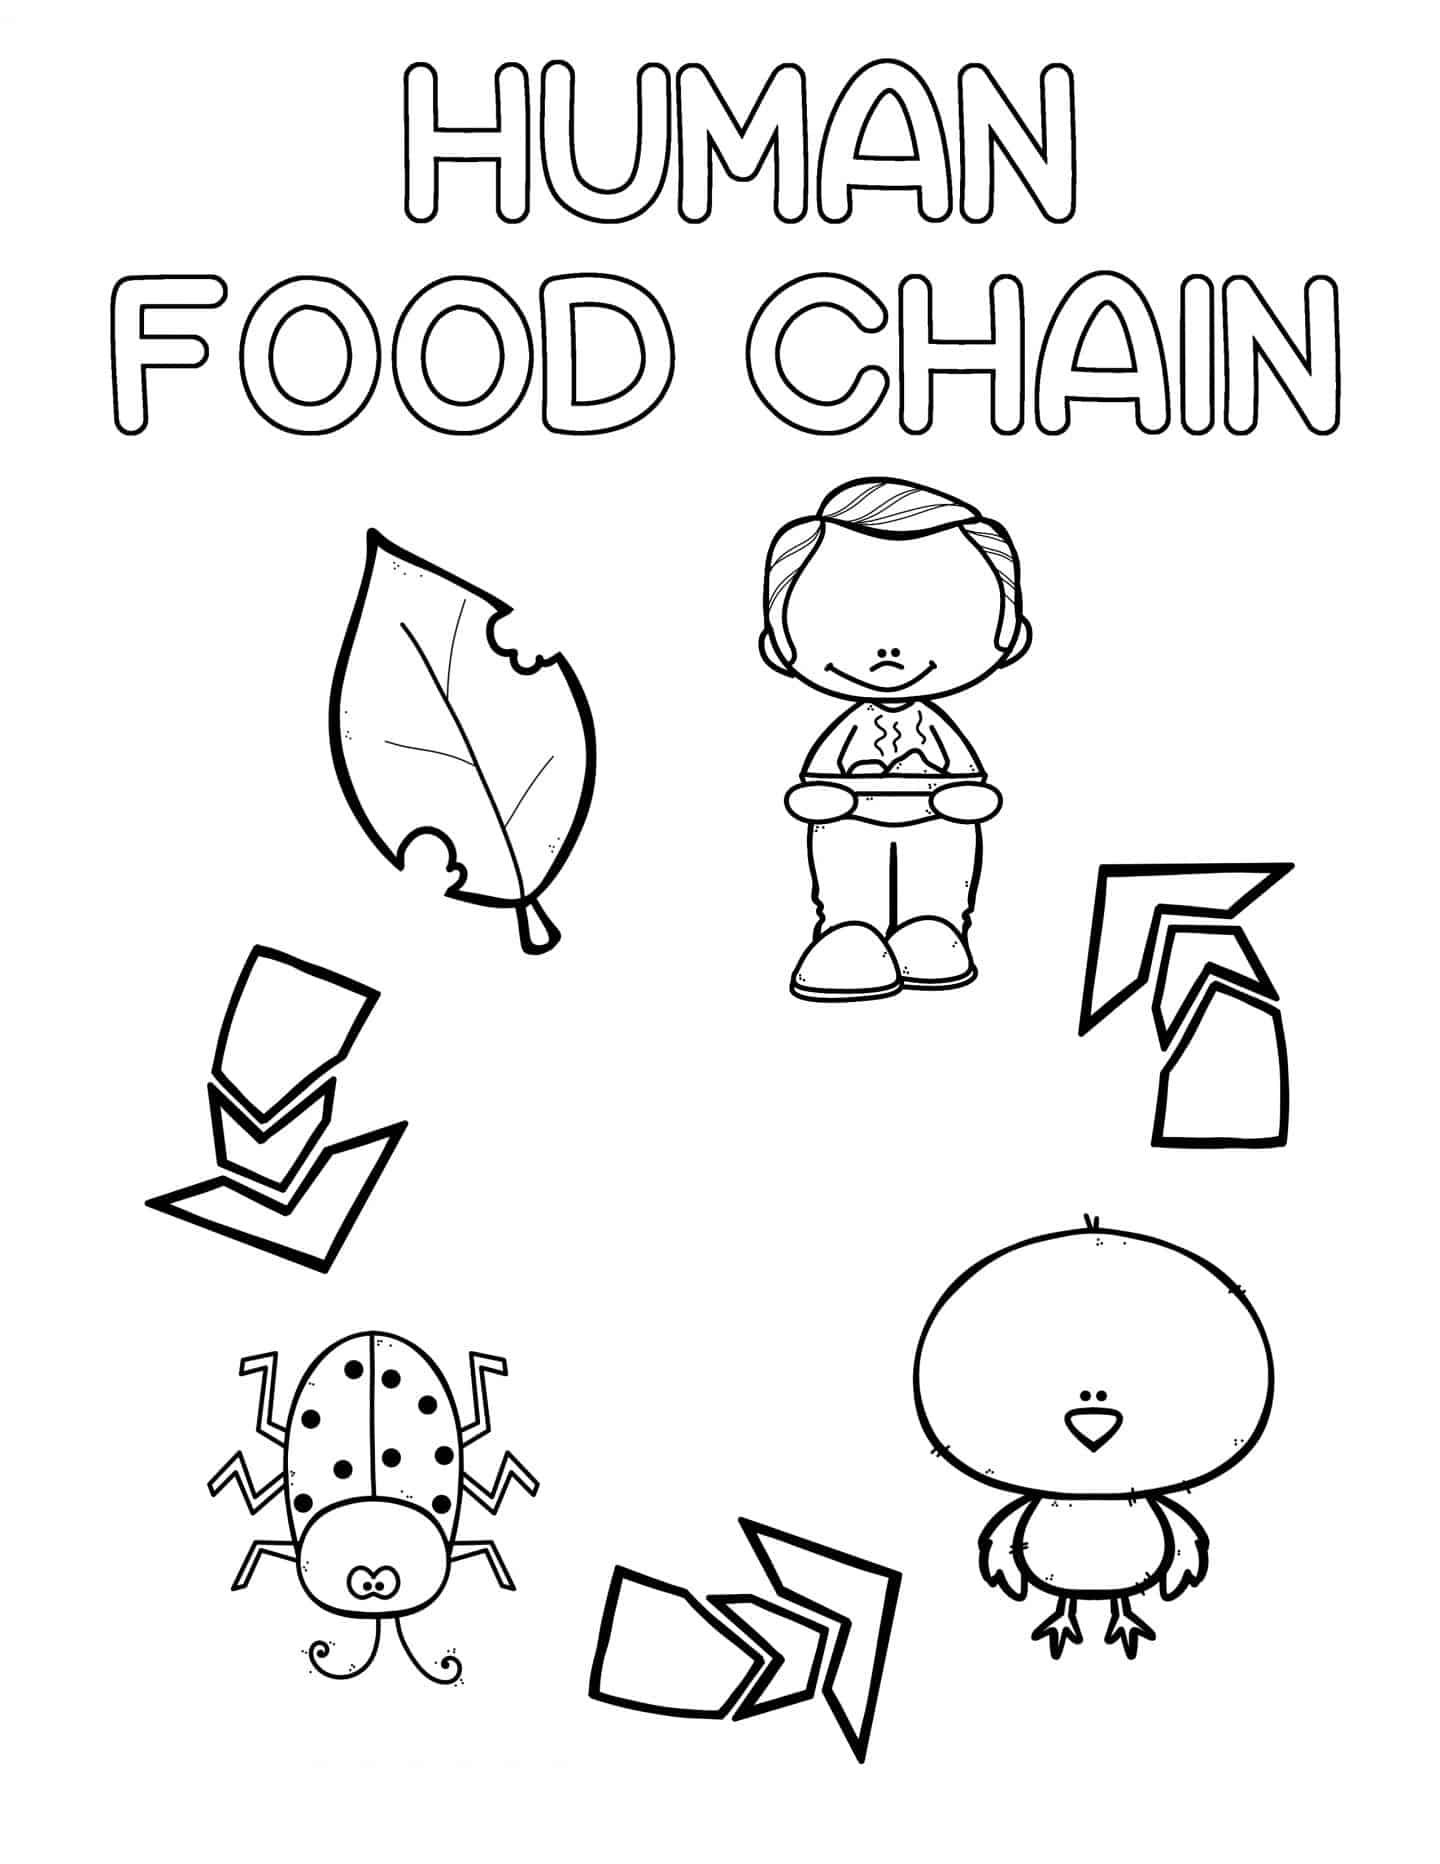 Preschool Coloring Pages Human Food Chain Food Chain Preschool Coloring Pages Food Chain Worksheet